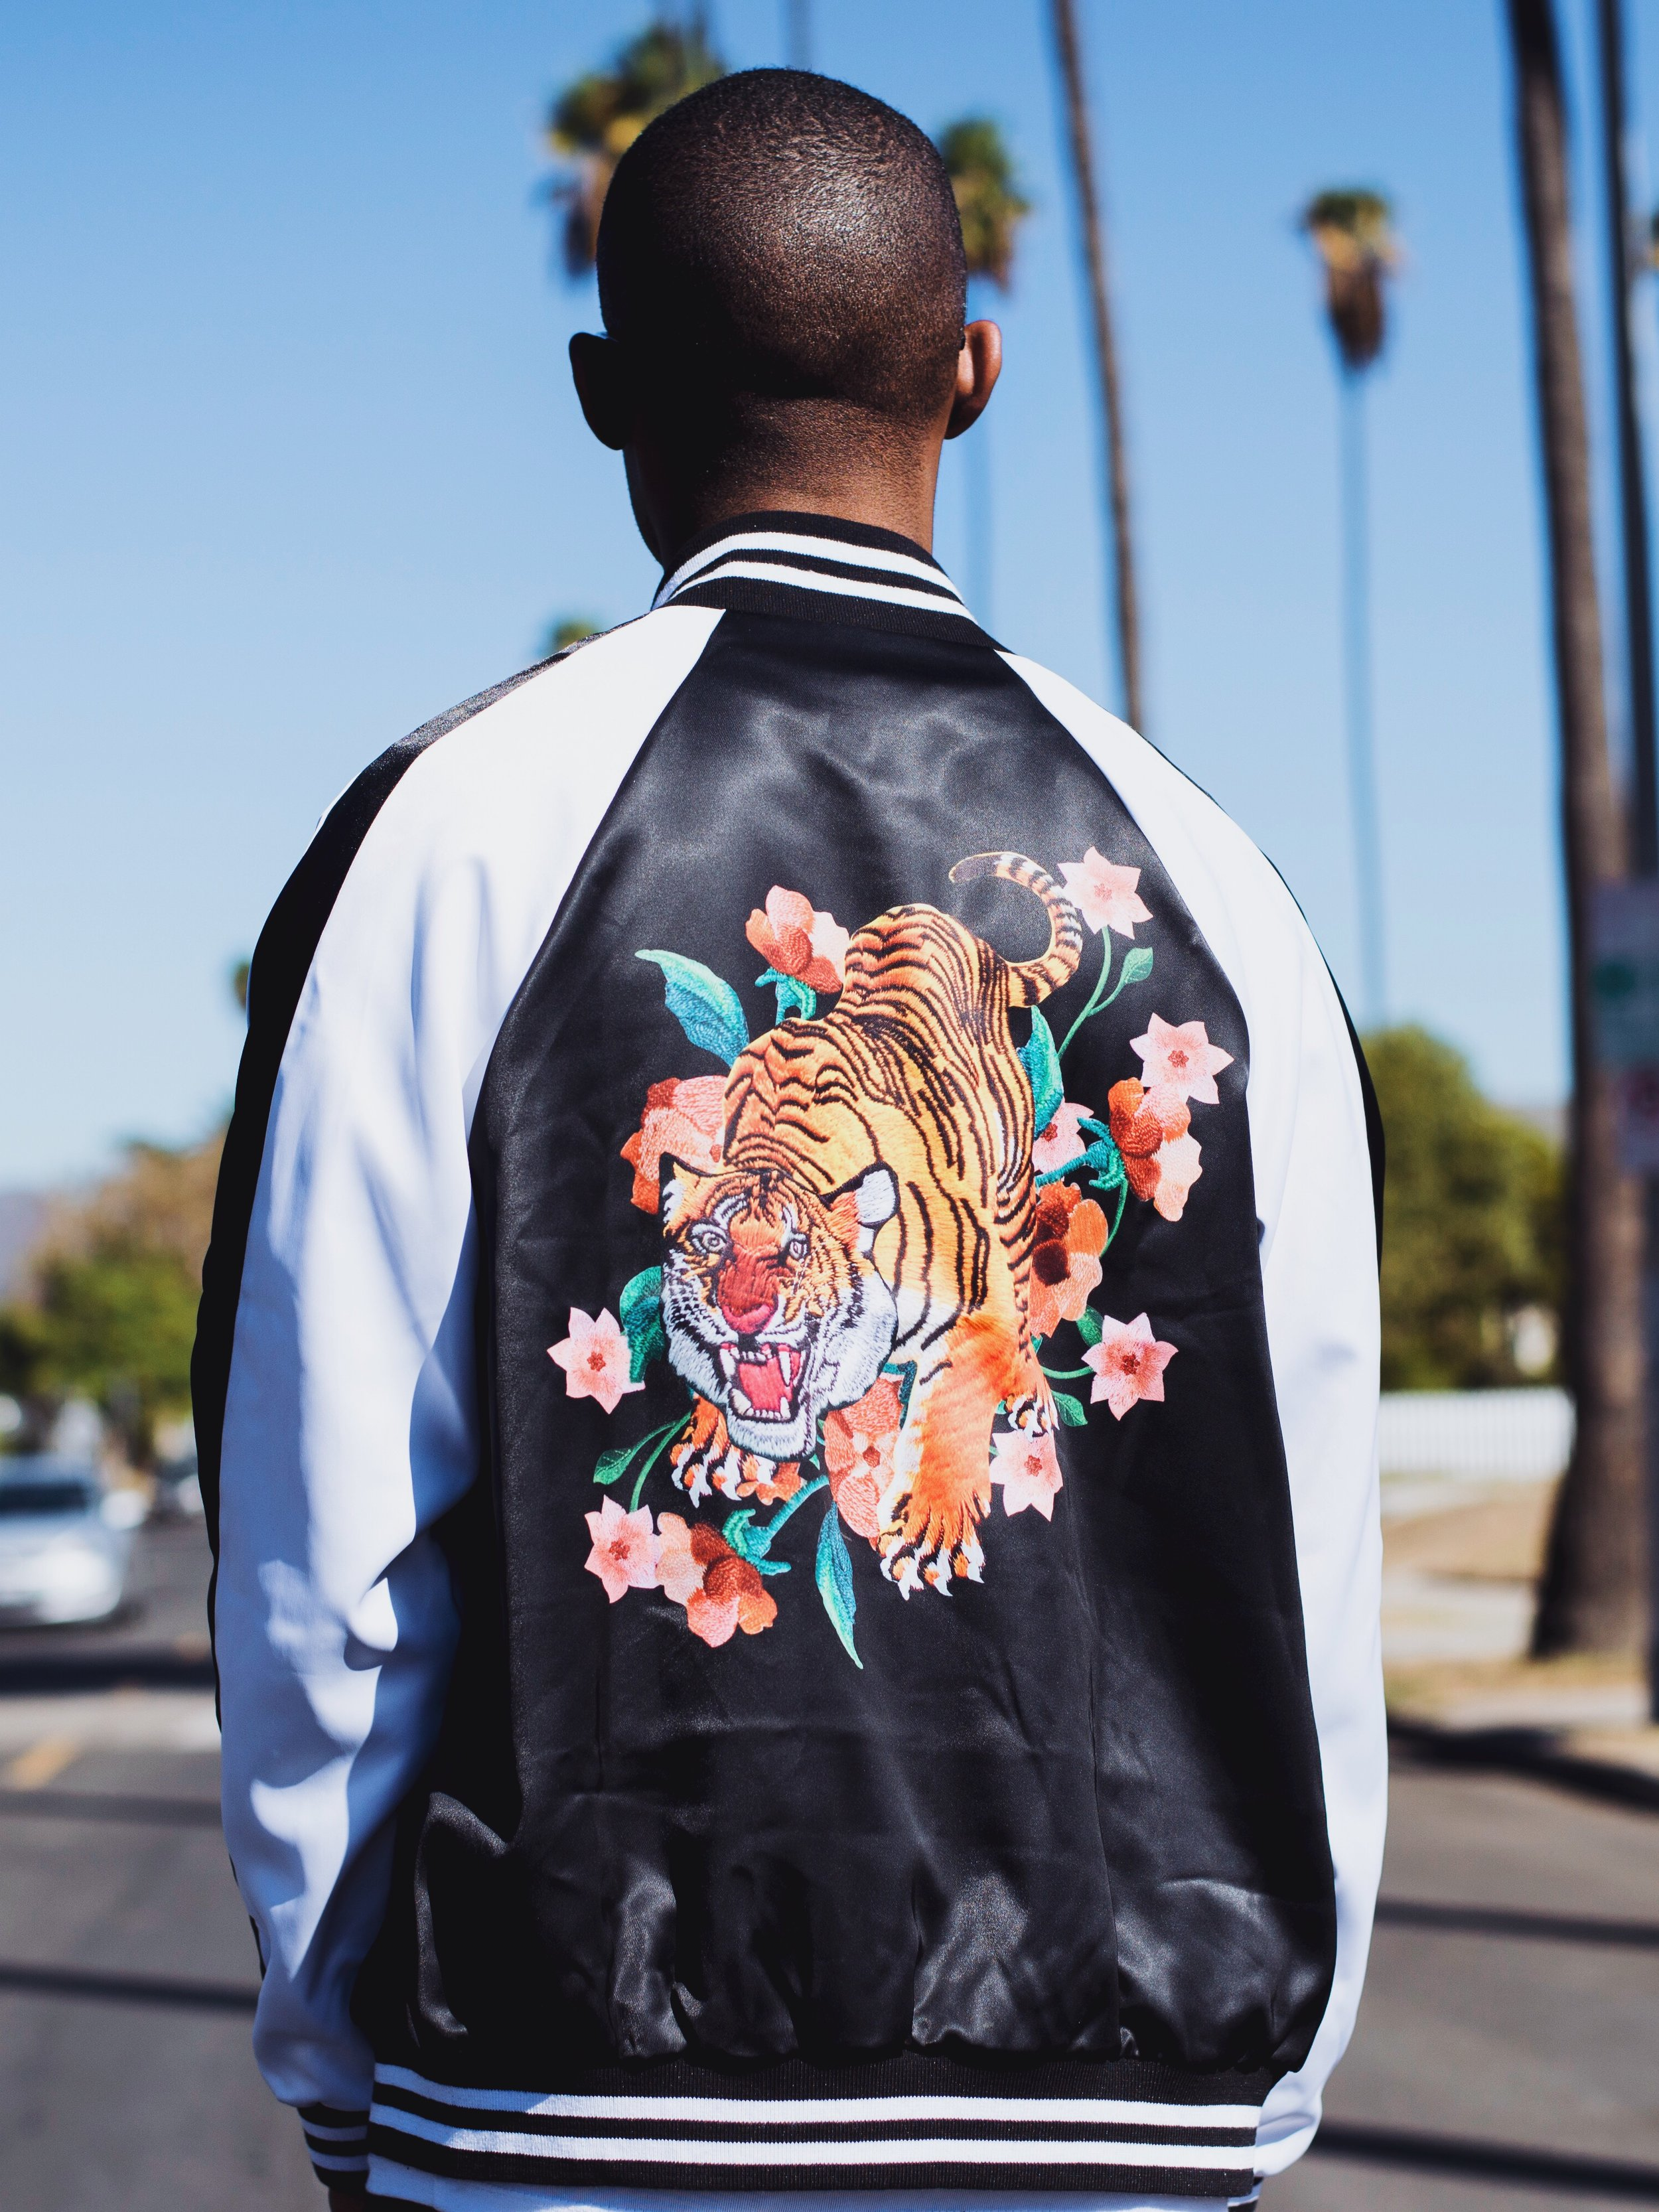 Trend Alert: Souvenir Jackets and Embroidery